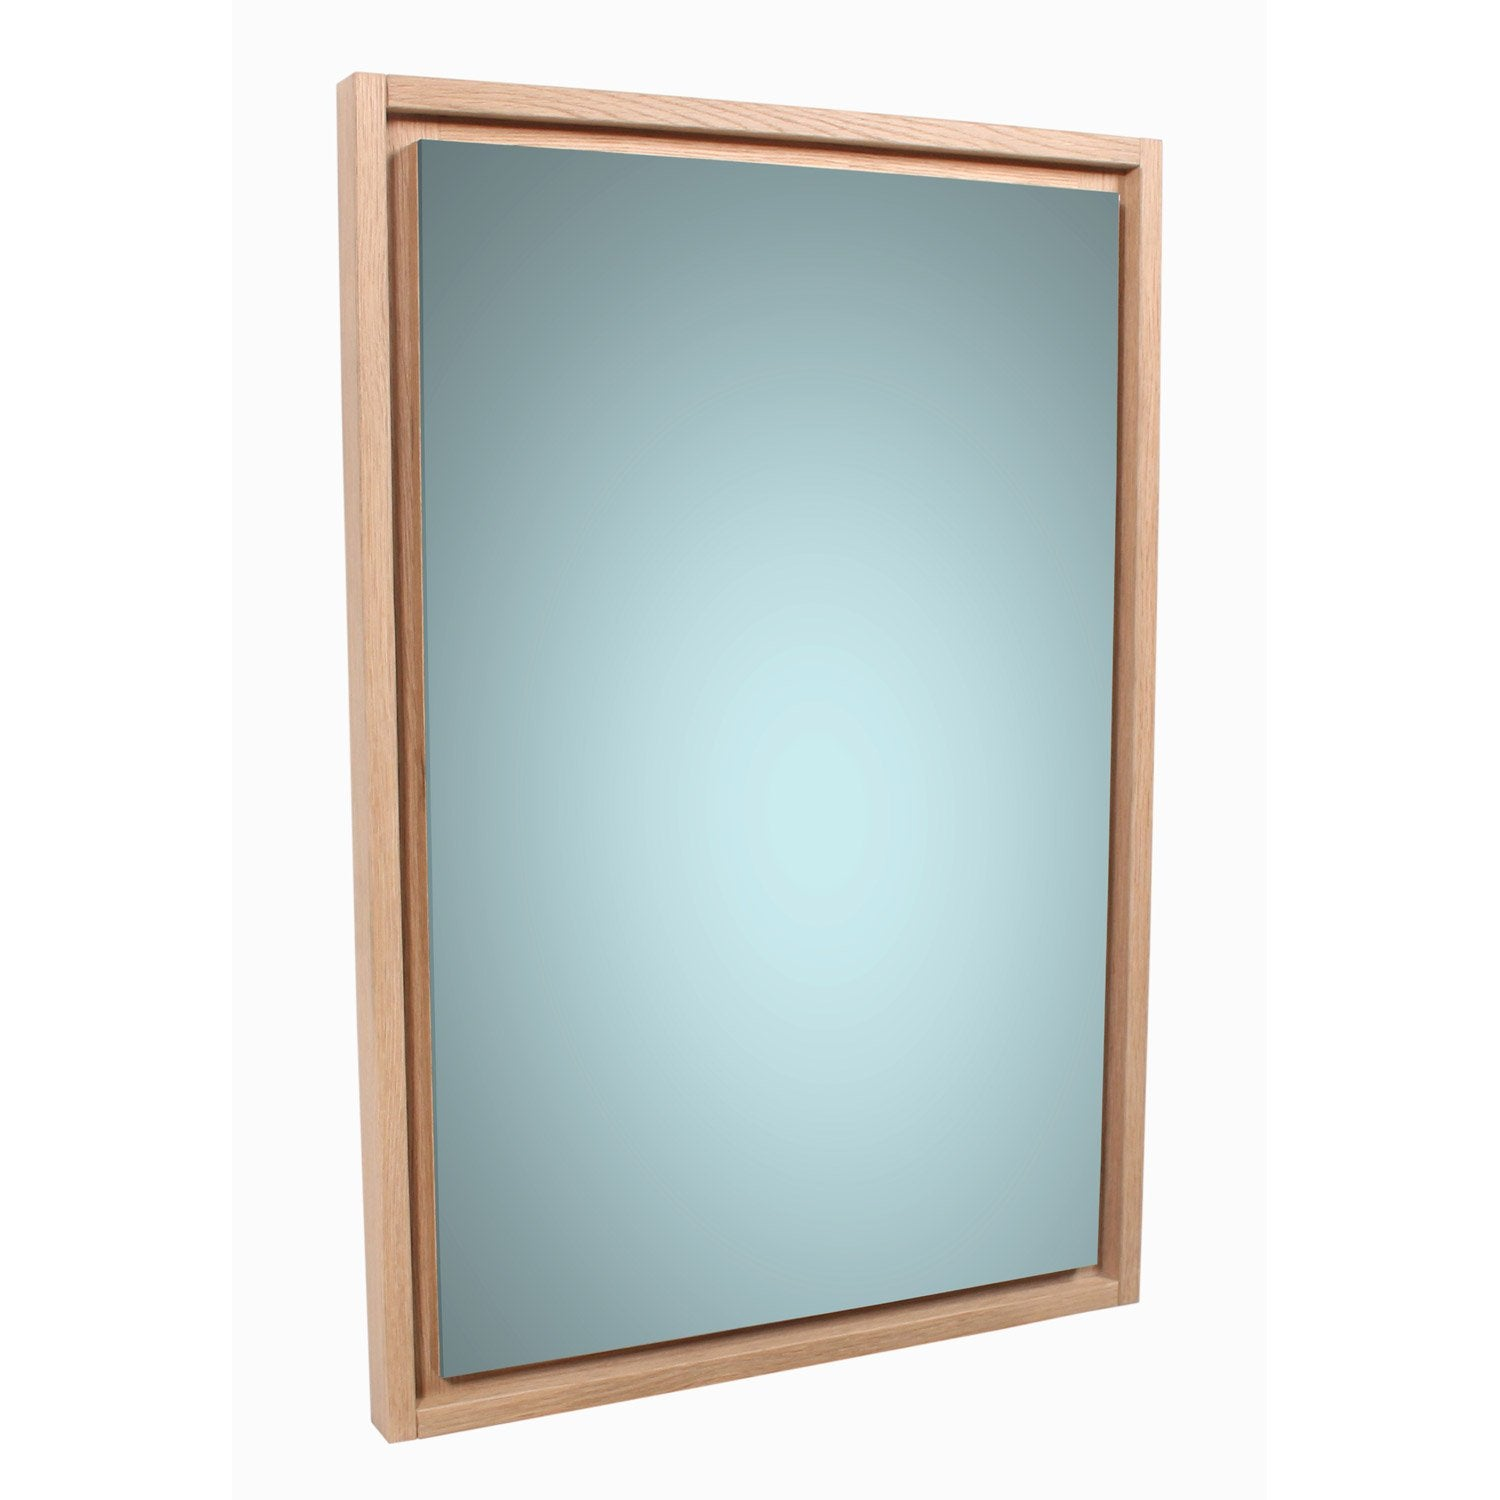 Magasin de miroir salle de bain id es de for Decoration miroir